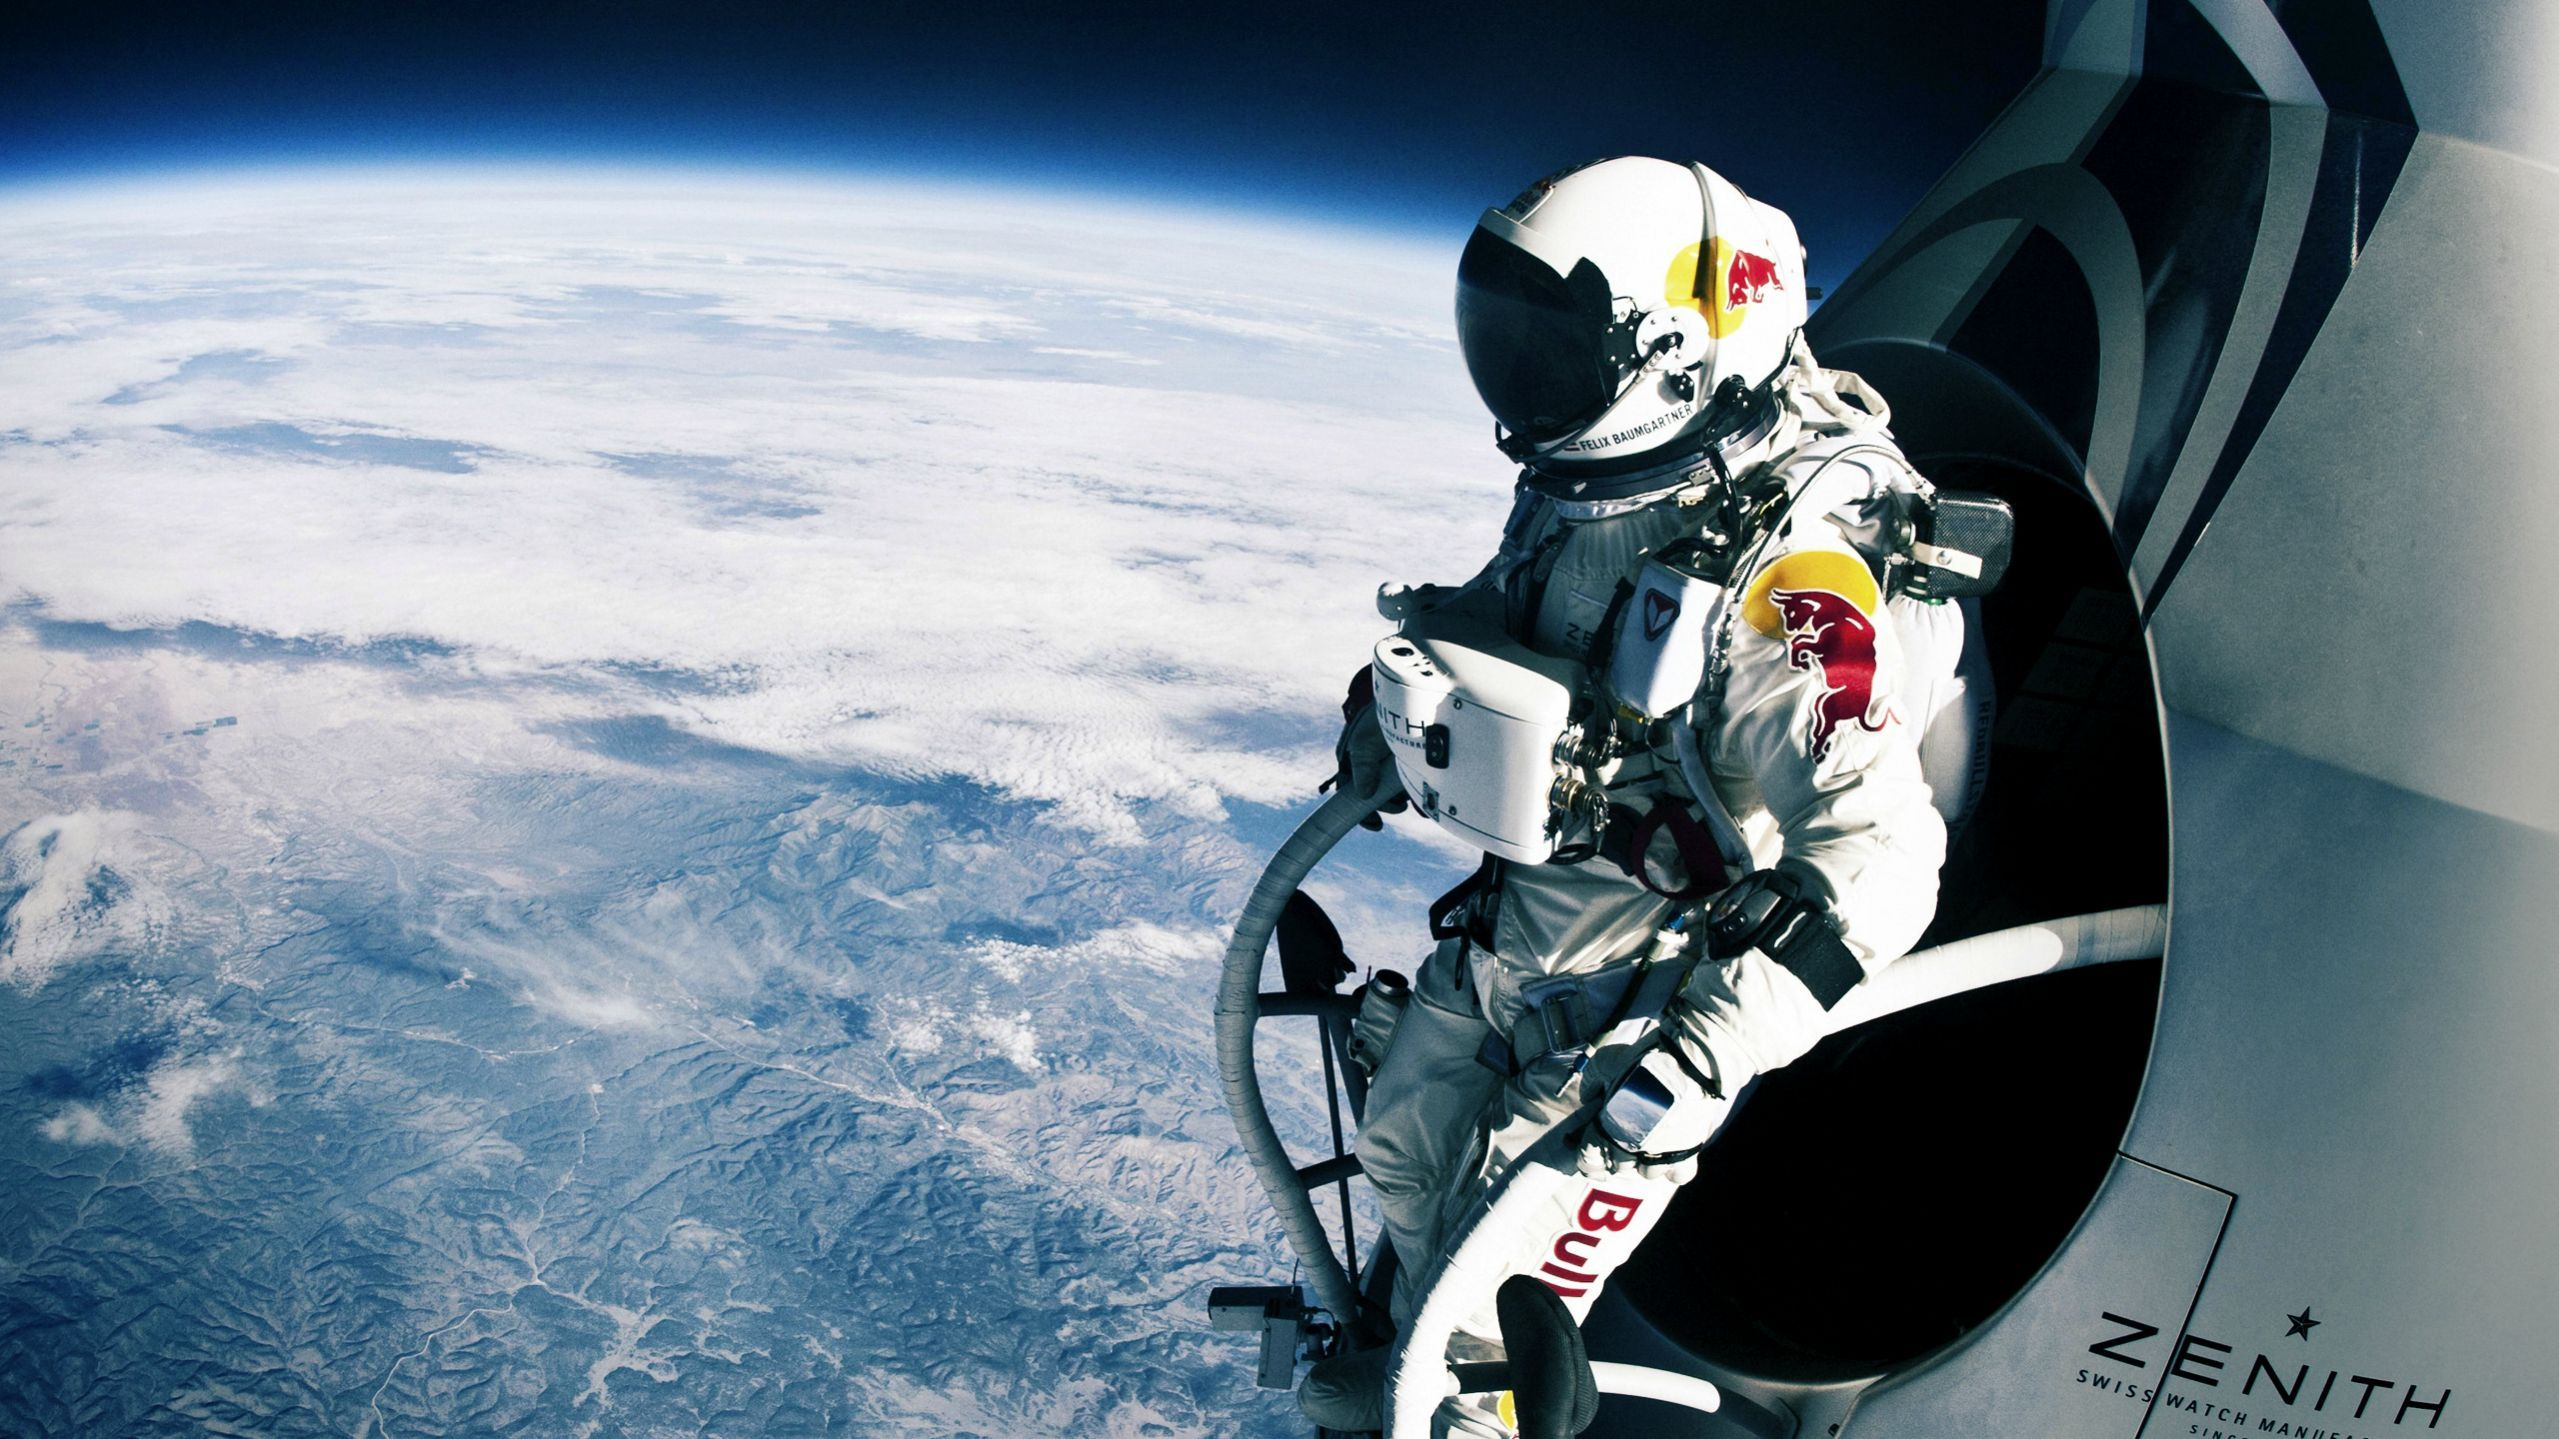 Felix Baumgartner Moments Before His Epic 39 Kilometre Skydive